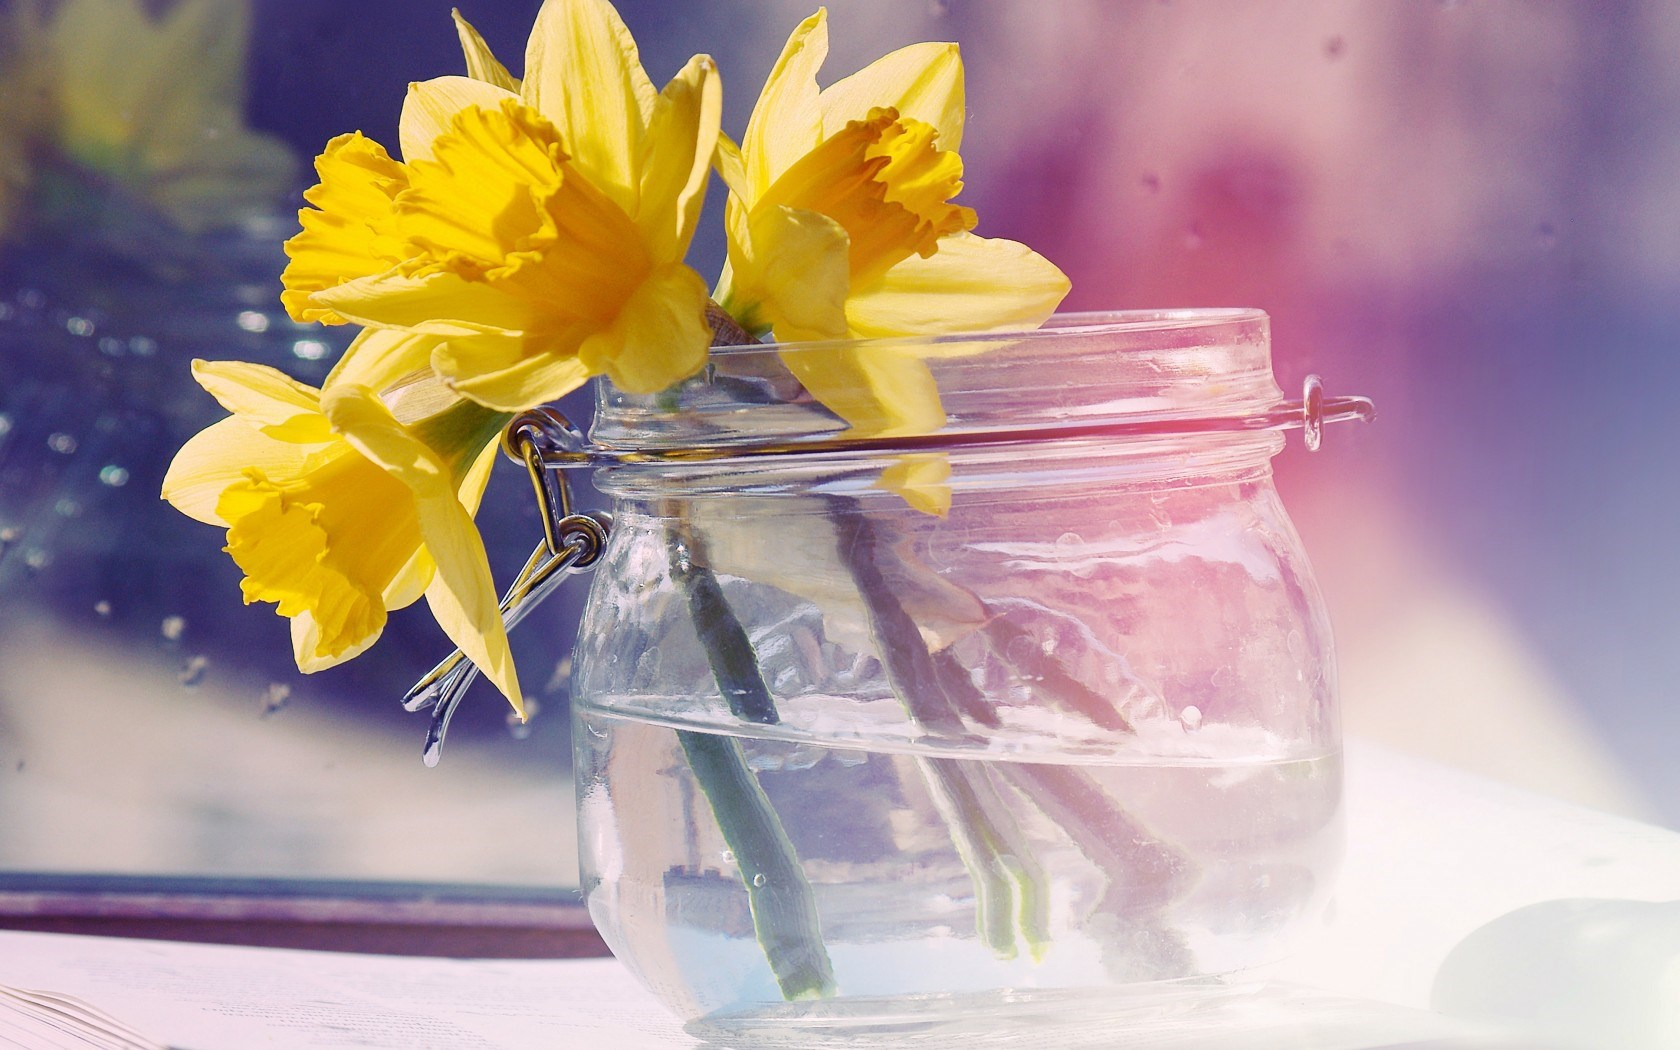 Daffodils Flowers Yellow Jar Water